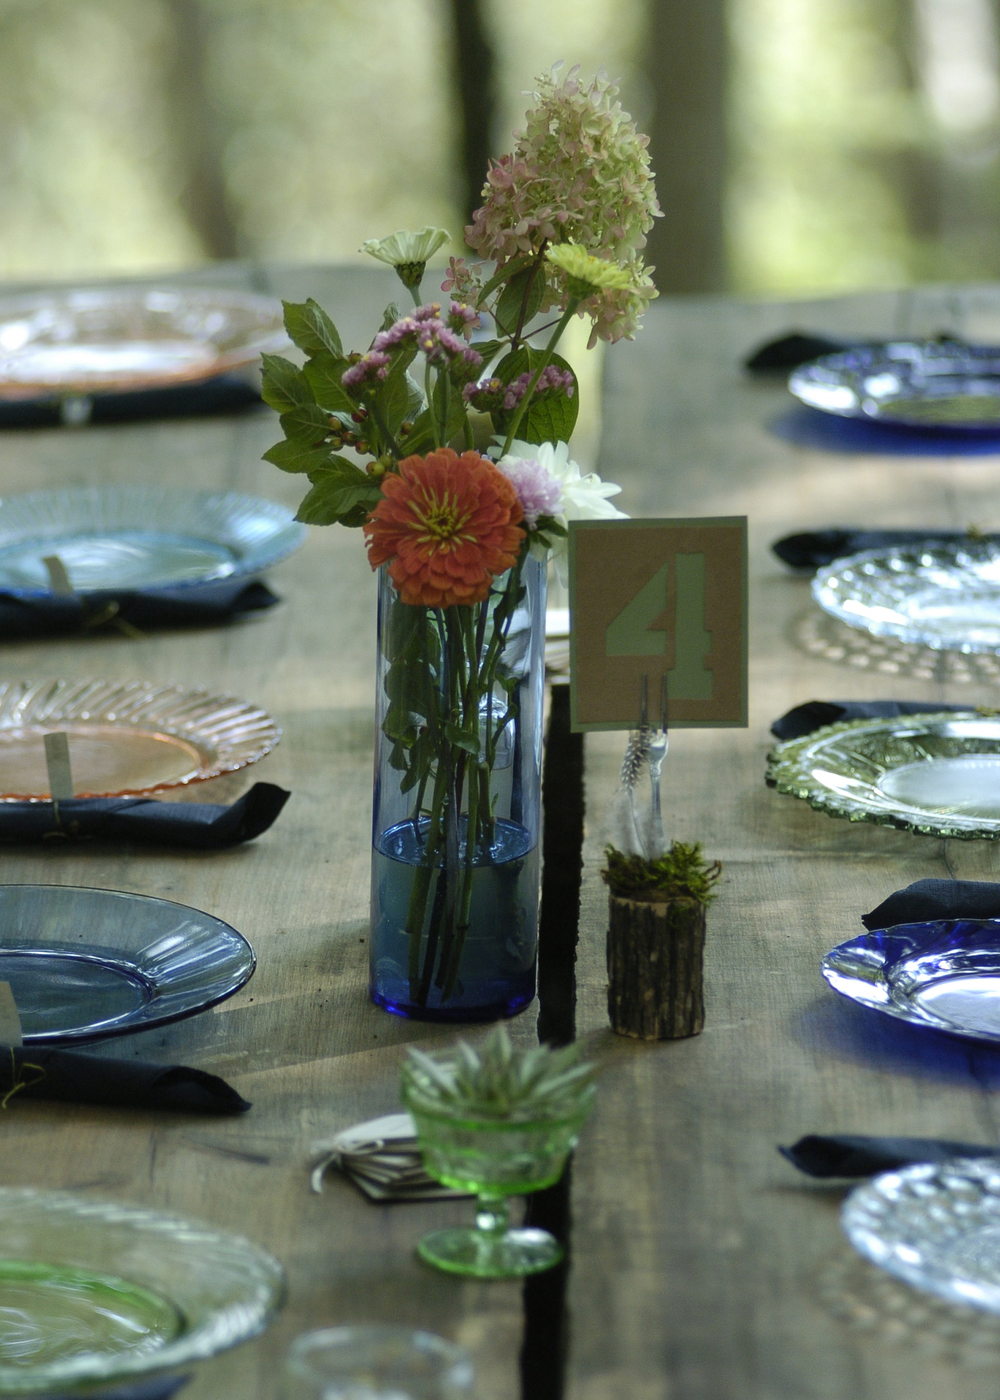 Vintage Depression glass plate rentals